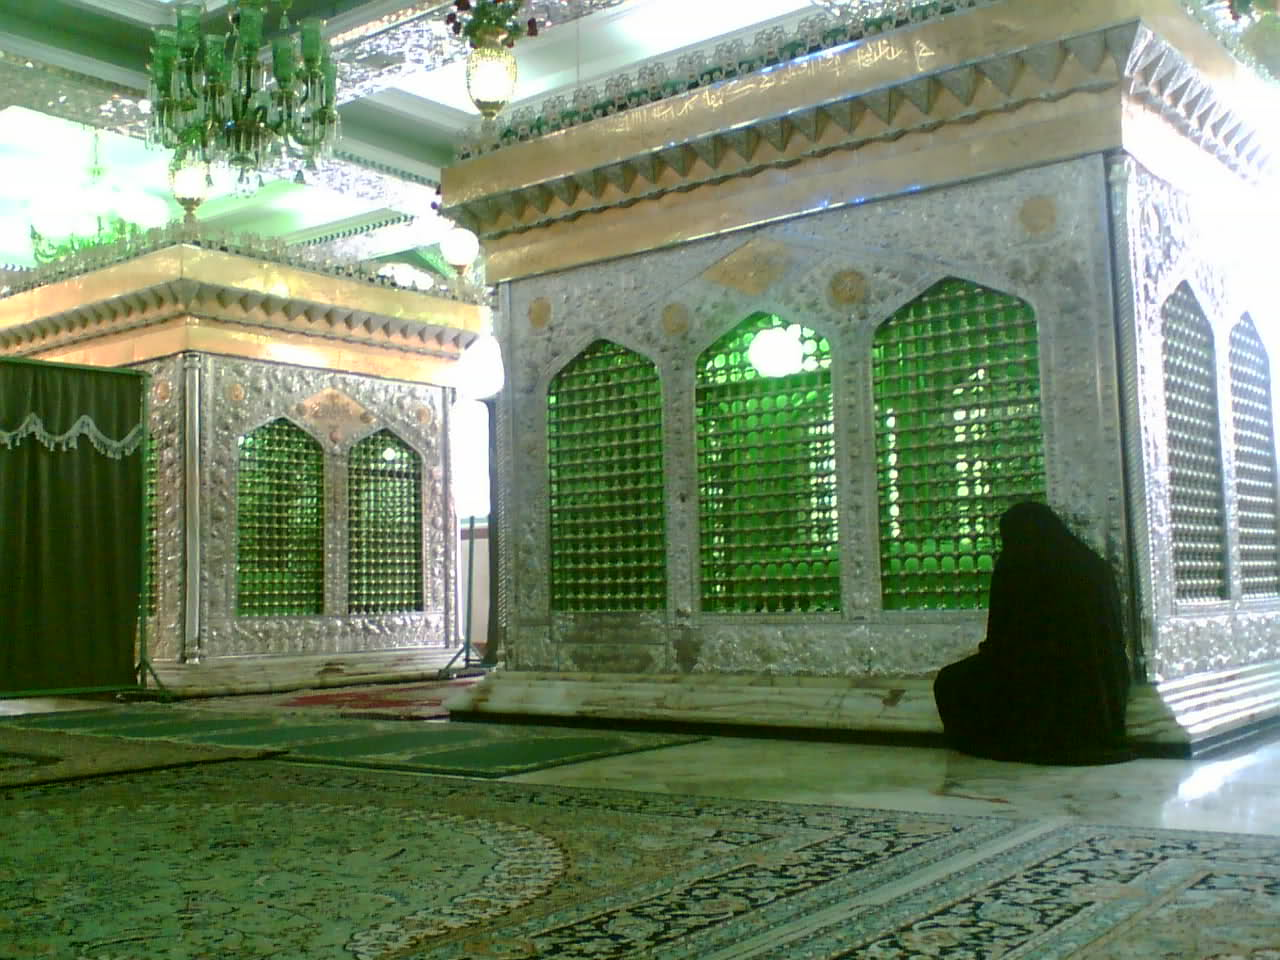 "These two Imam-born are the immediate descendant of Imam Mosa IbnJafar (the 7th Imam of Shiite Muslims). This holy shrine is located beside the road of Torghabeh, one of the most beautiful summer resorts nearMashhad.It is narrated that these two Imamzadehs were the sons of Imam Mūsá al-Kāżim and also were the brothers of Imam Reza. These two Imamzadehs came to Iran with Imam Reza and were martyred in this region. This holy religious monument is a place where people from all over theKhorasan province and Iran come here to pray. They believe that their vows will be granted in this place. The front faces of the walls are made from bricks and tiles and two gates open toward inside. One of these gates directly opens toward a hall where two tombs are located and another gate opens toward ""shoes room"" and this room is connected to the tombs hall. Writings on the tiles of walls show that they have been written and installed in three different periods. The oldest writing is a Nastaliqcalligraphy which the date of 1957 is mentioned in the text and in the end of the text the date of 1958 is registered. The majority of the pilgrims who visit this shrine are from Arabic nationalities near the Persian Gulf."